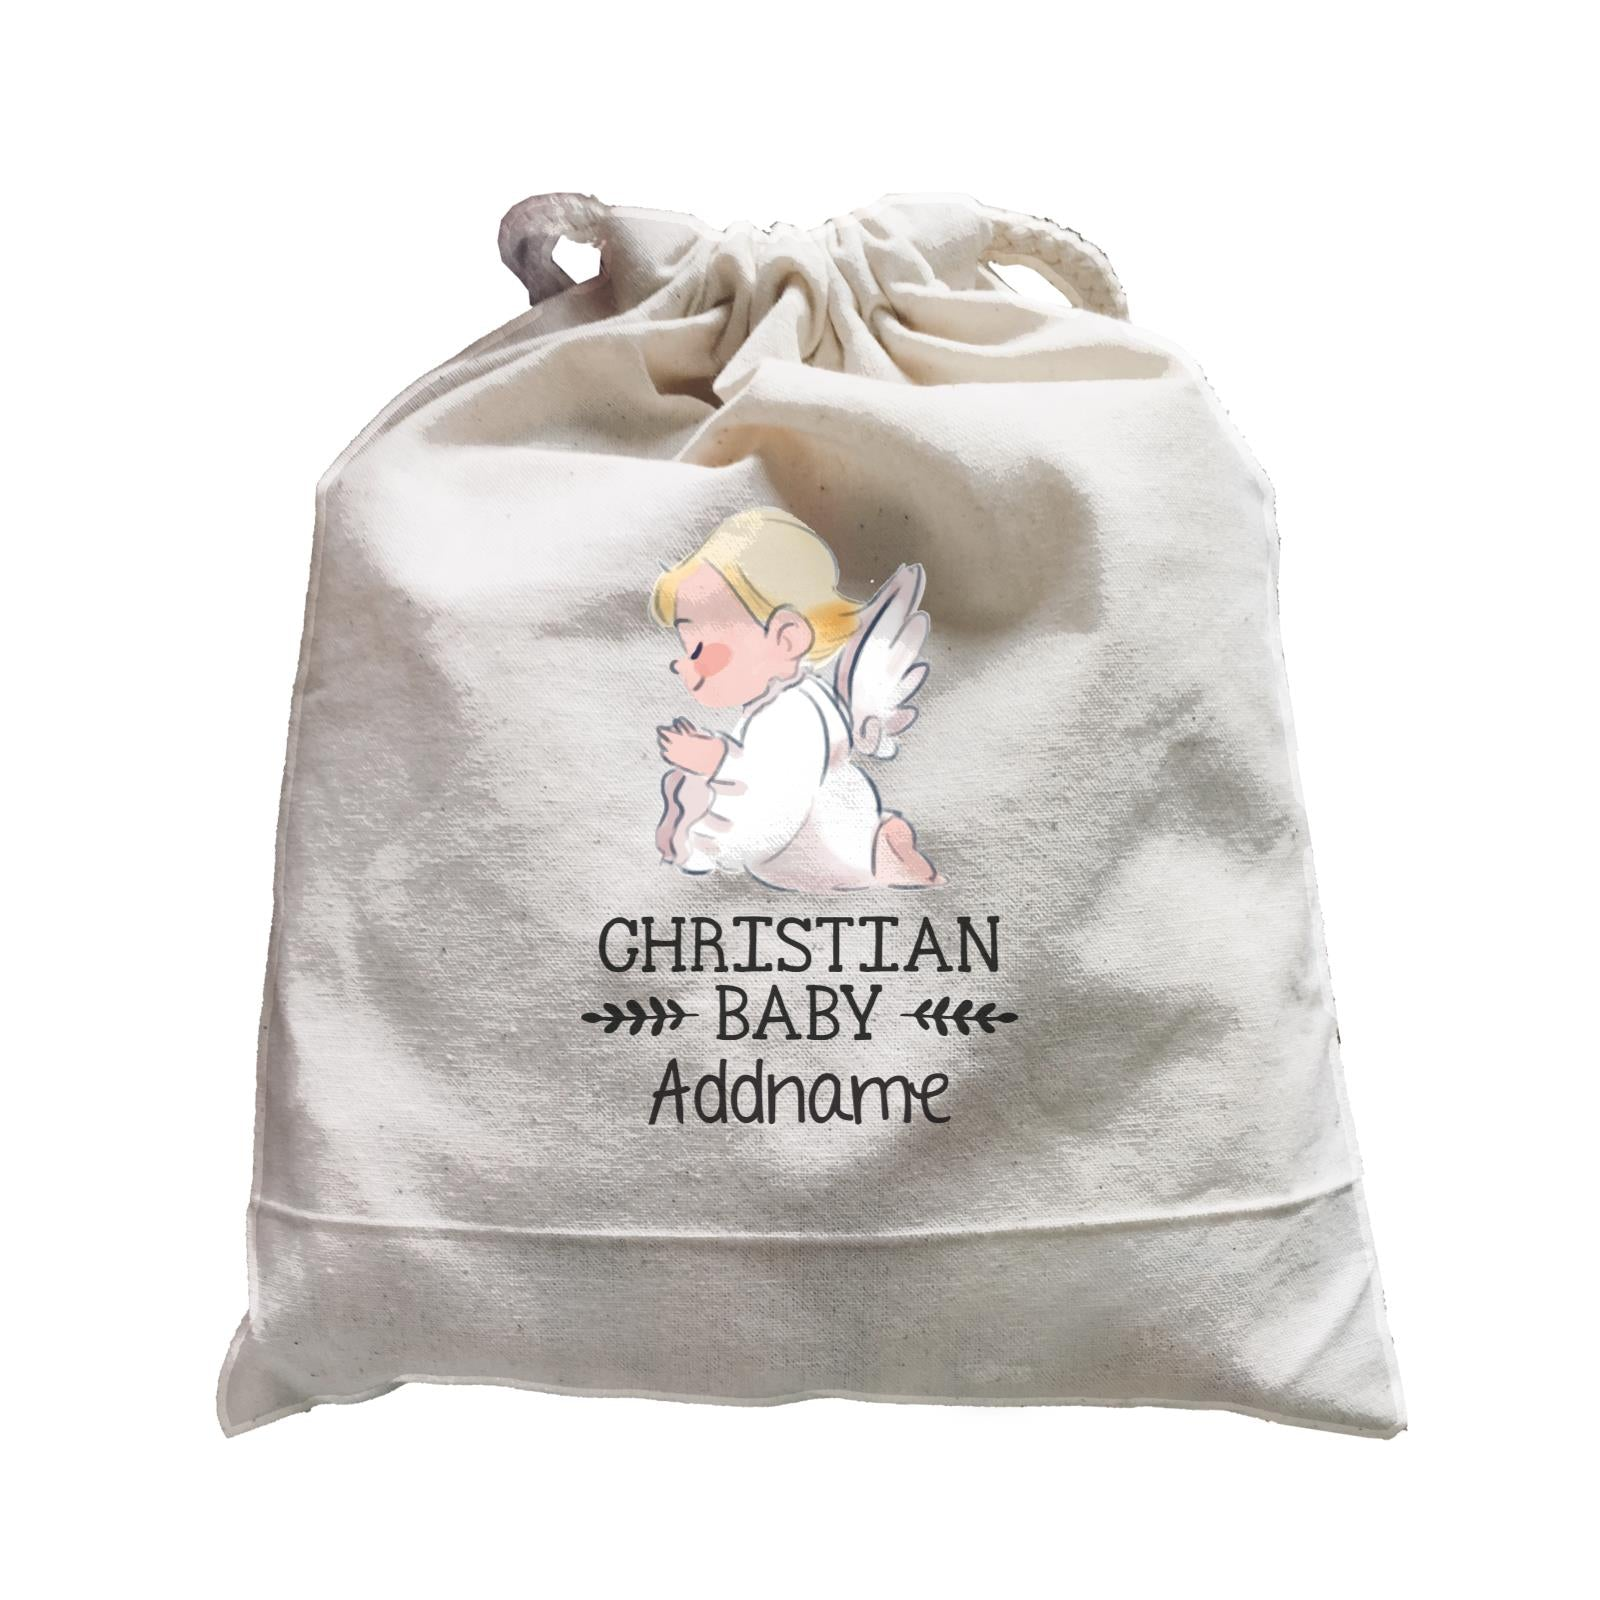 Christian Baby Angel Christian Baby Addname Satchel